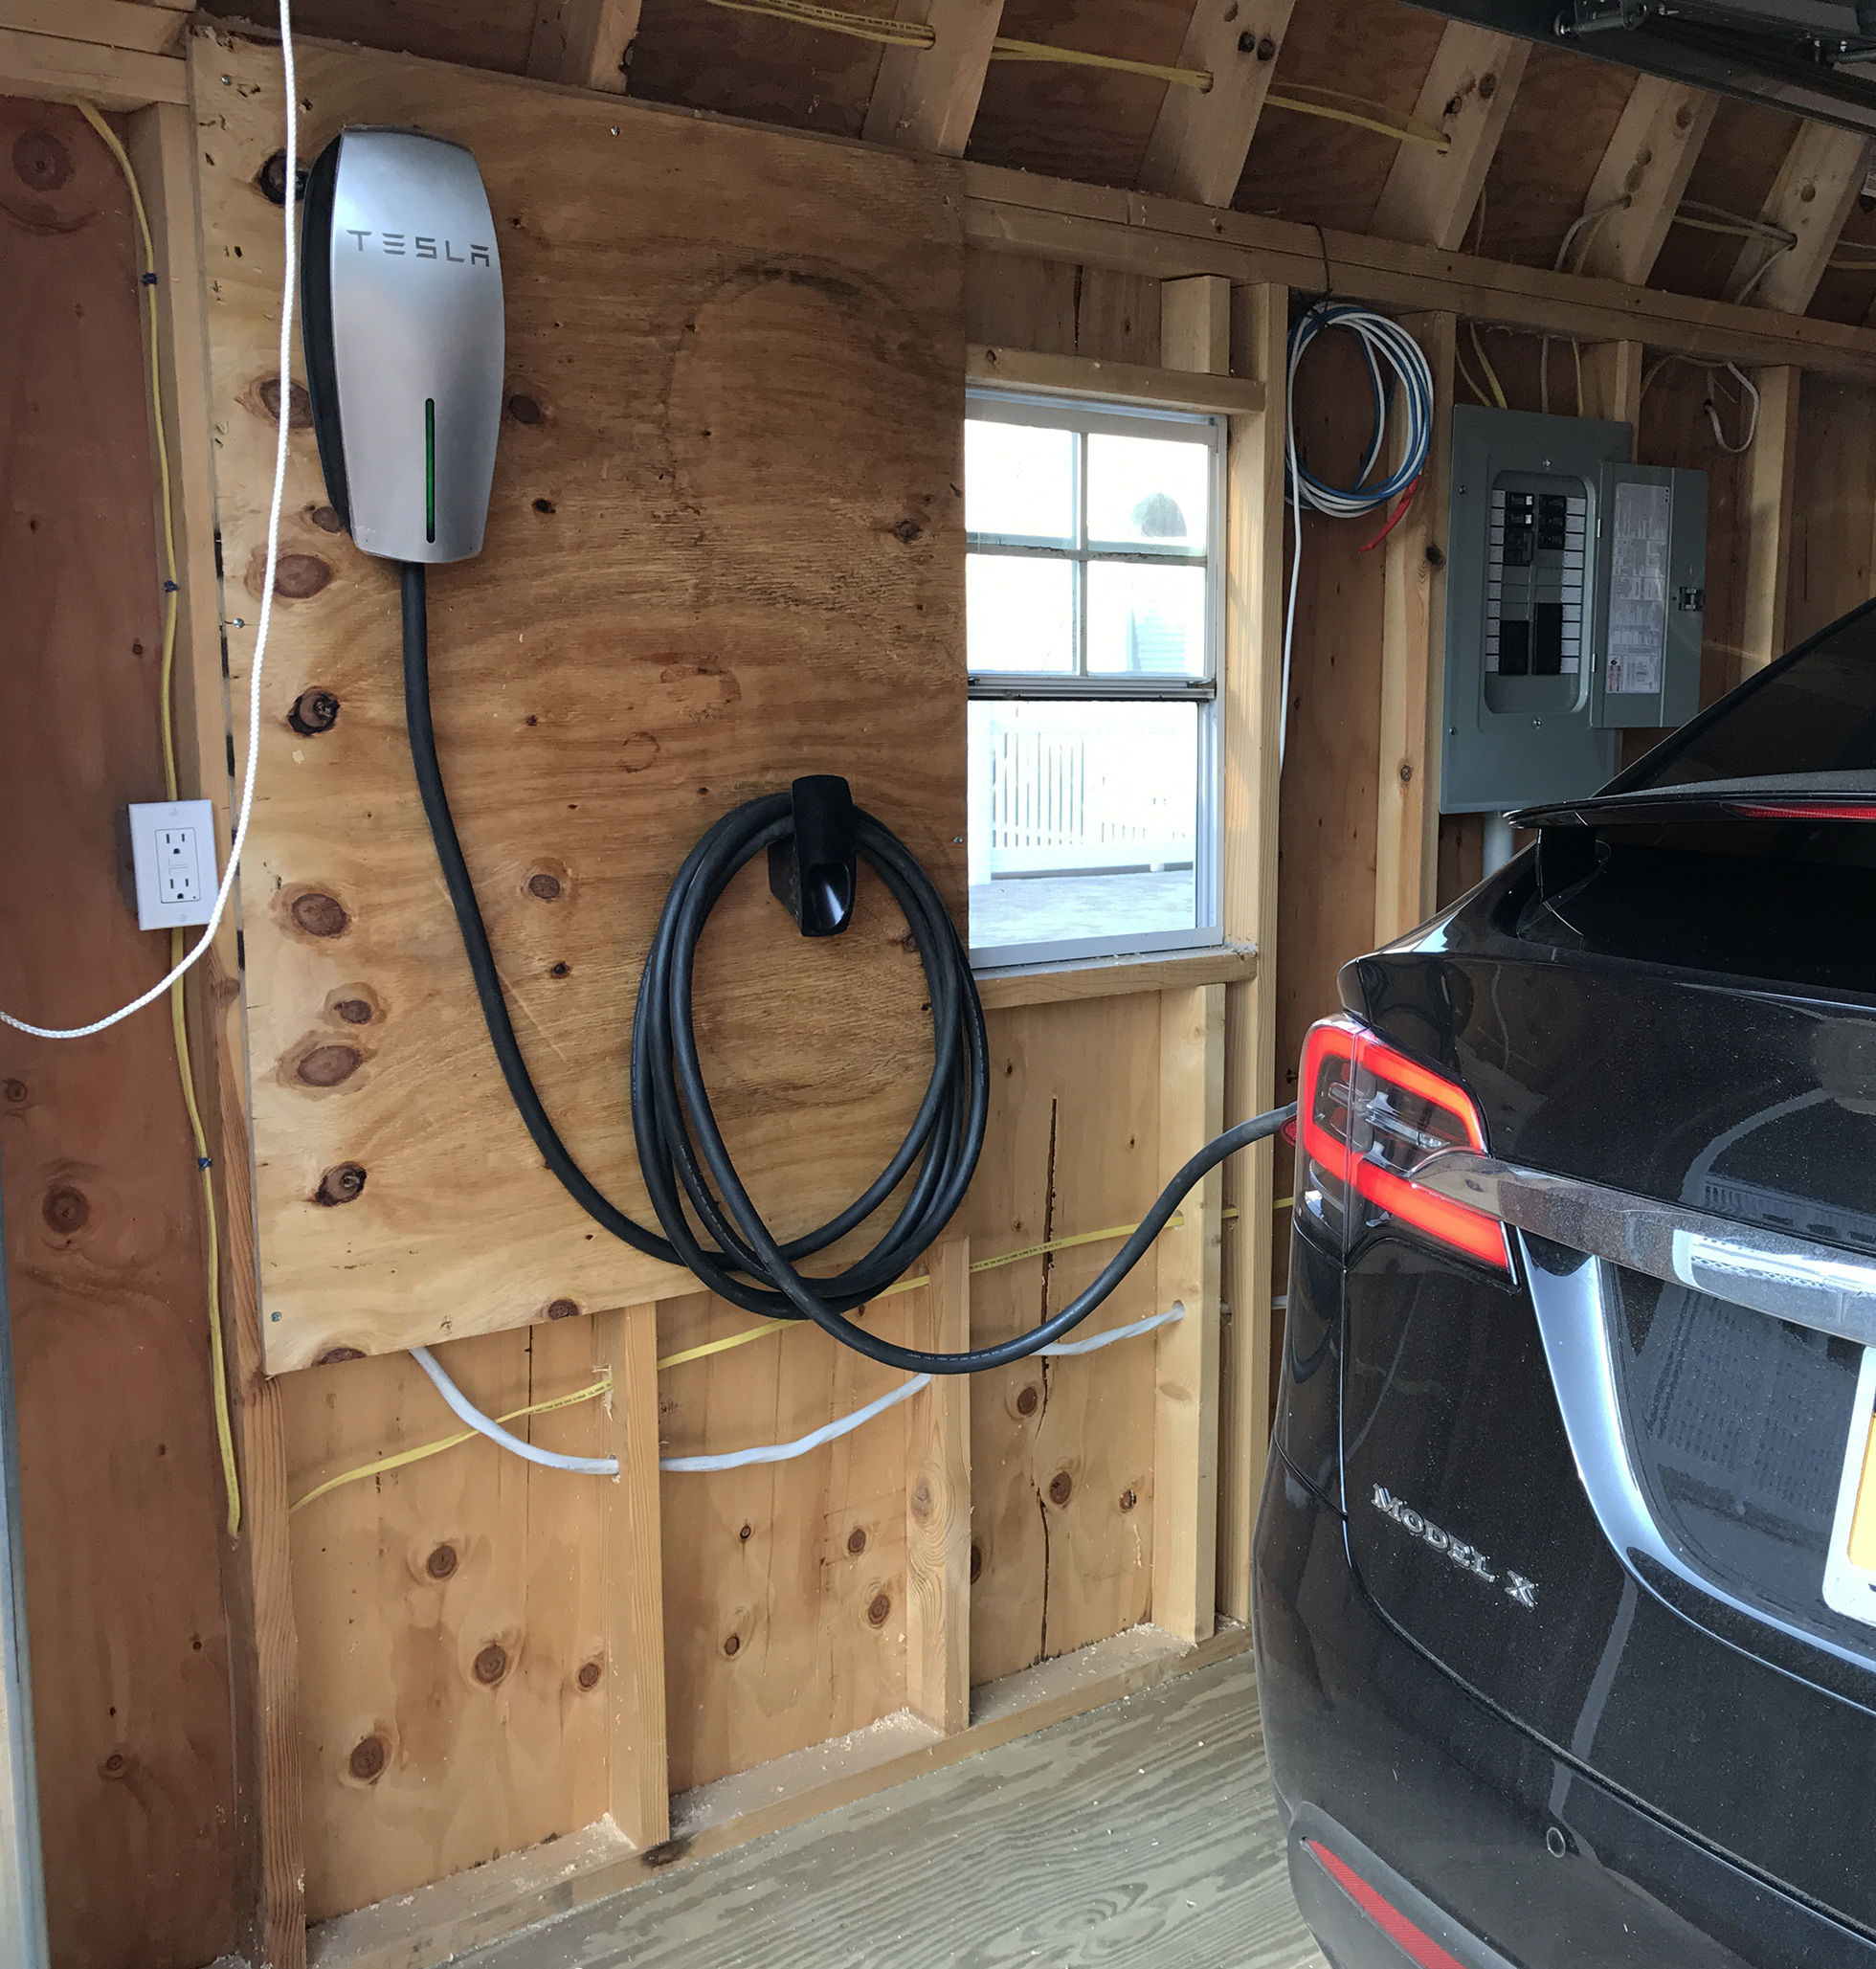 Wood-paneled garage with black electric car charging